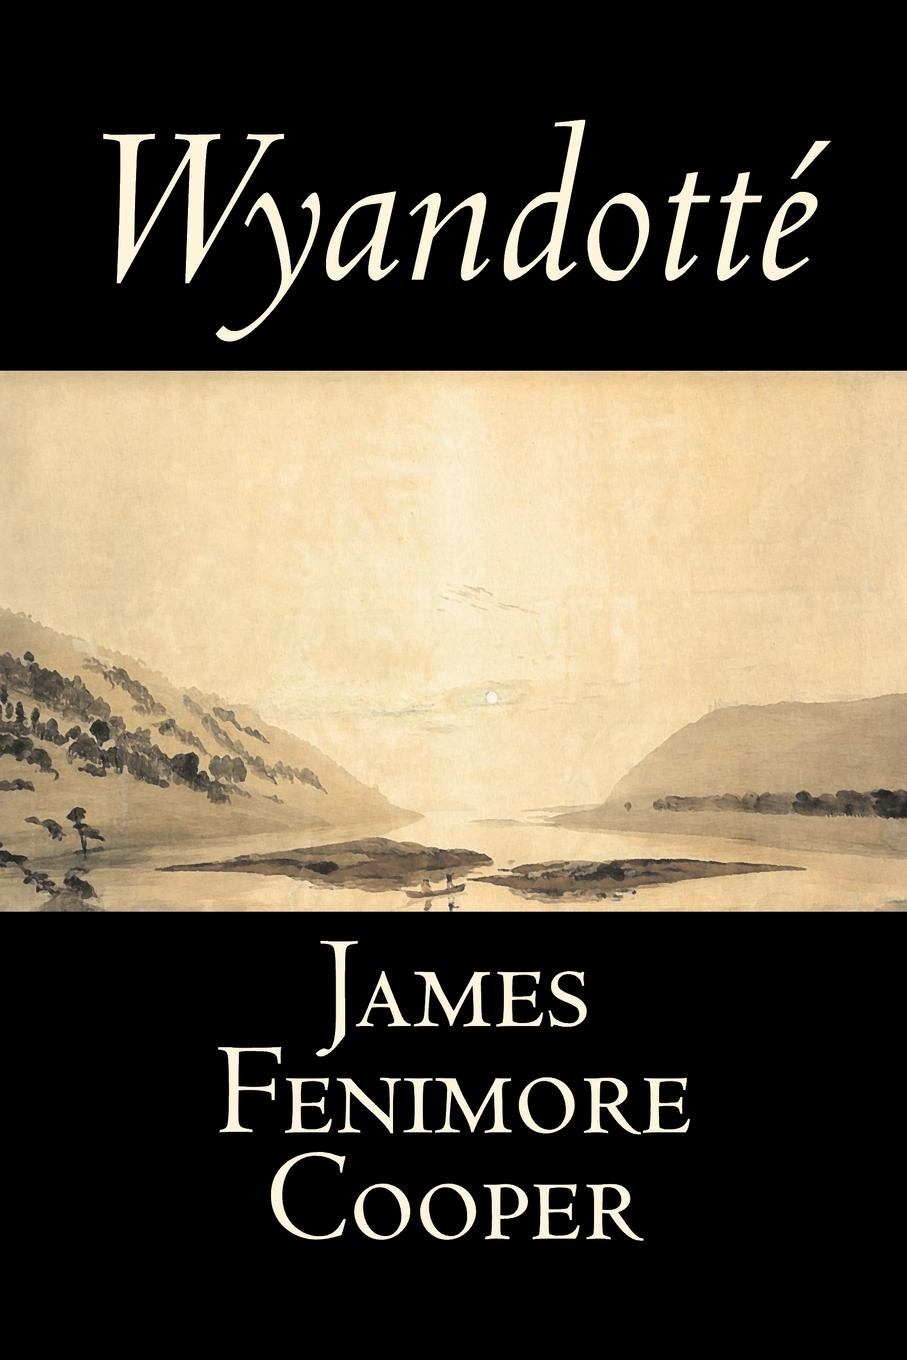 James Fenimore Cooper Wyandotte by James Fenimore Cooper, Fiction, Classics, Historical, Action & Adventure the good and the bad indians in the fiction of cooper